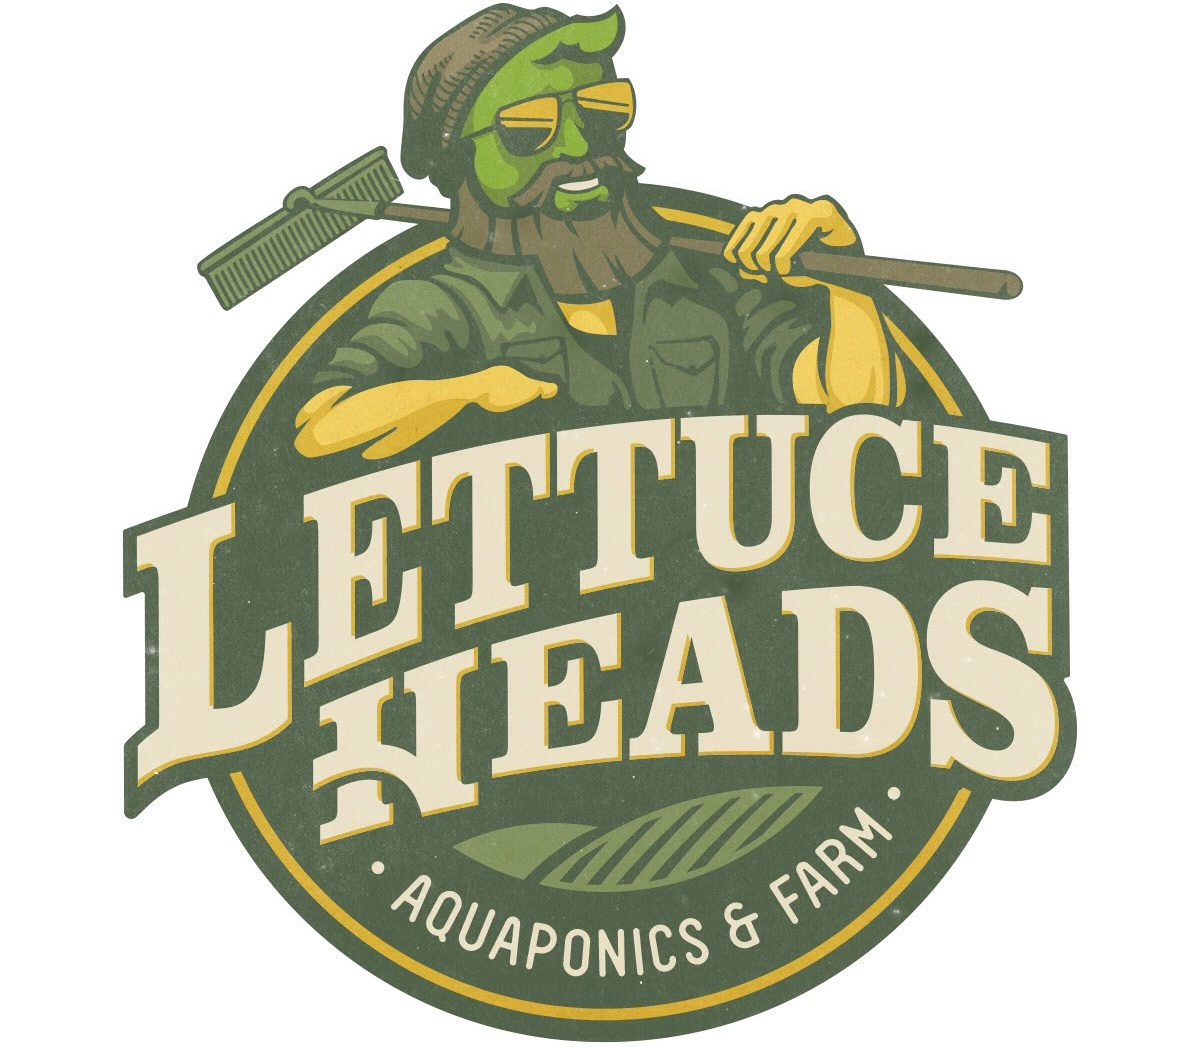 Lettuce Heads Aquaponics and Farm